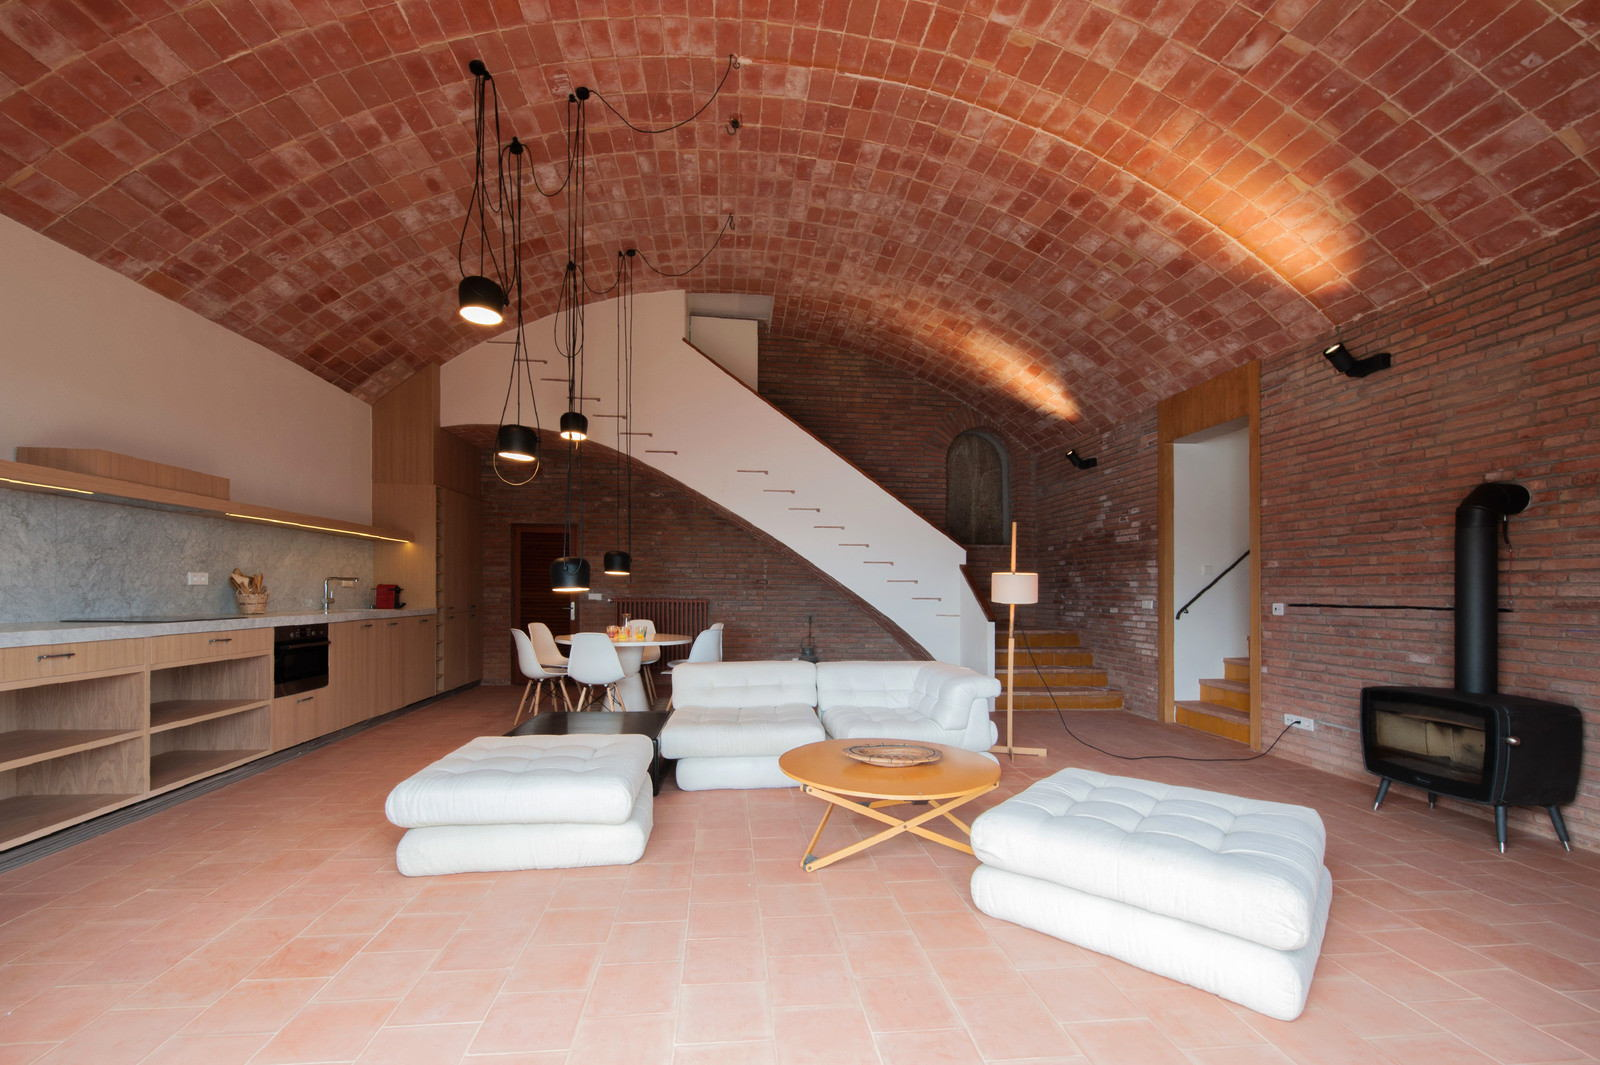 Renovation-of-a-private-house-just3ds.com-1